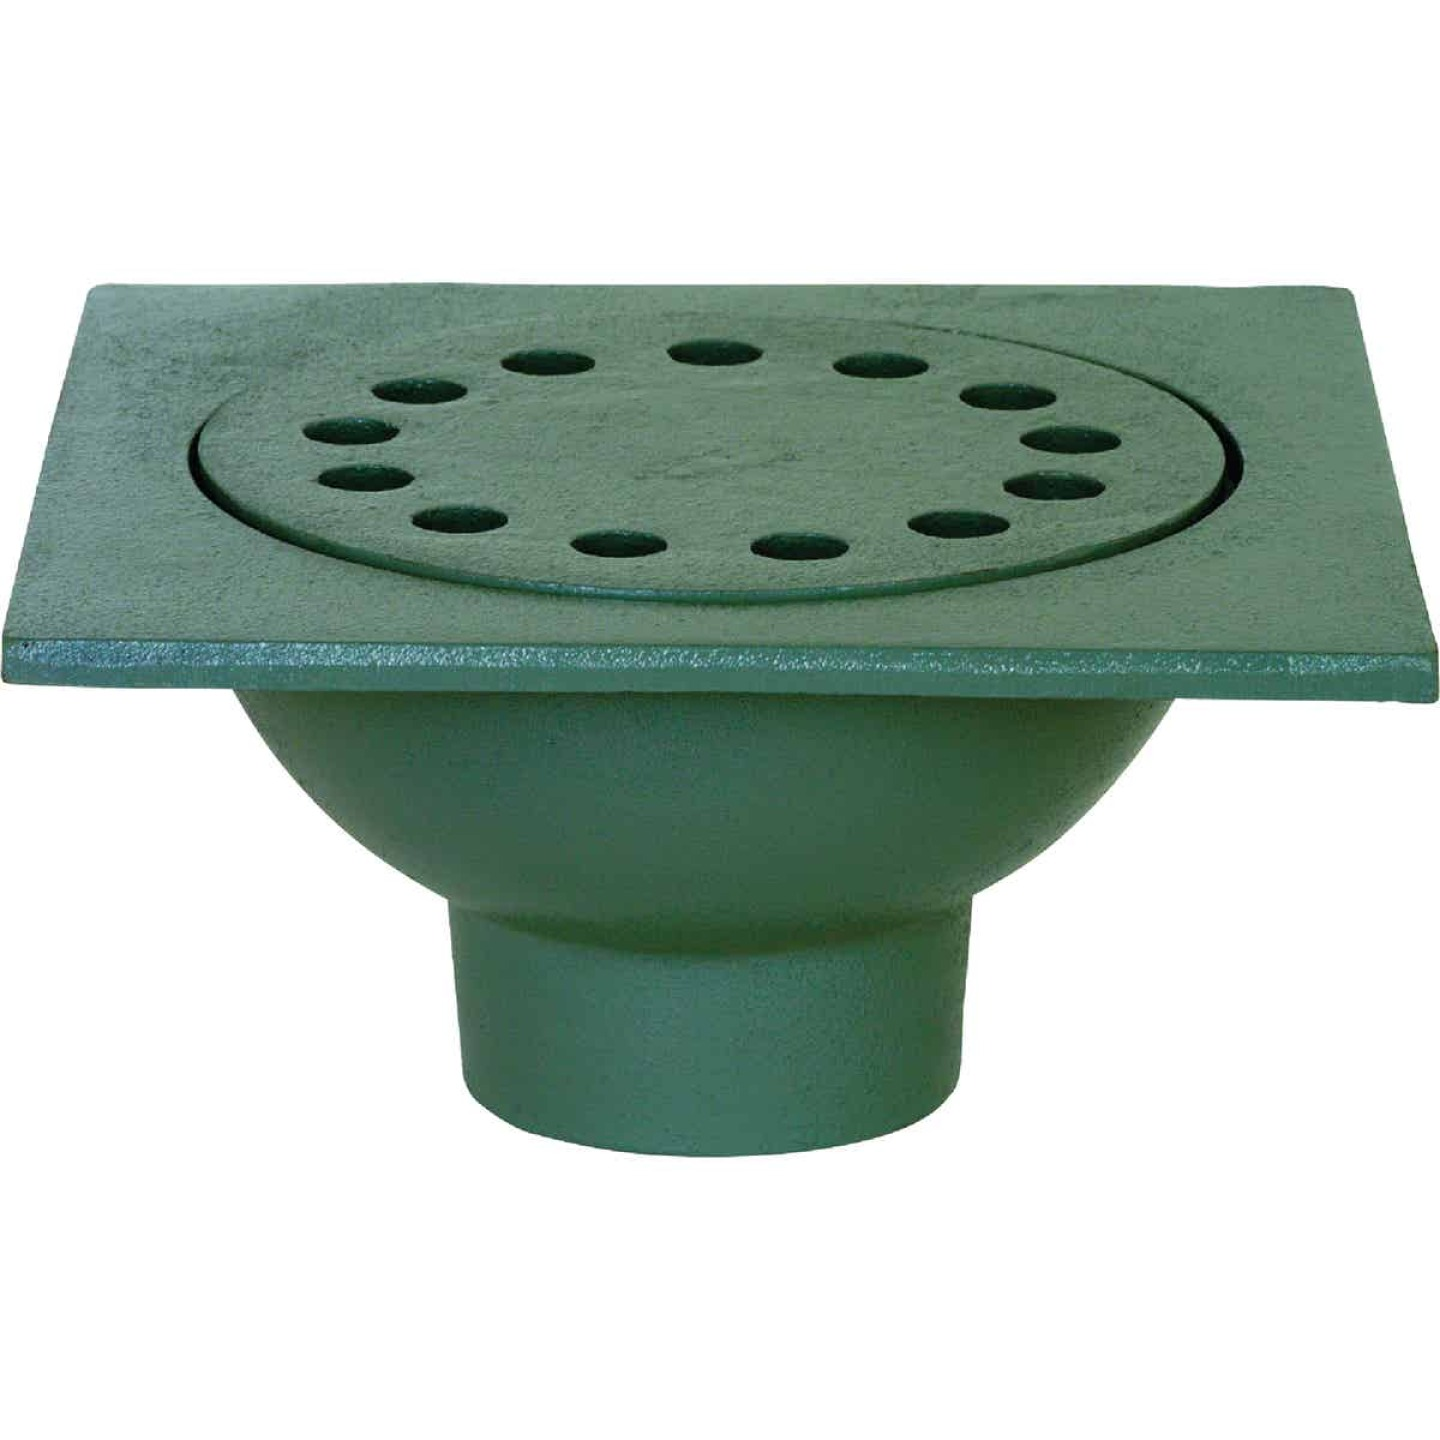 Sioux Chief Bell 9 In. Cast Iron Sewer and Drain Bell Trap Image 1